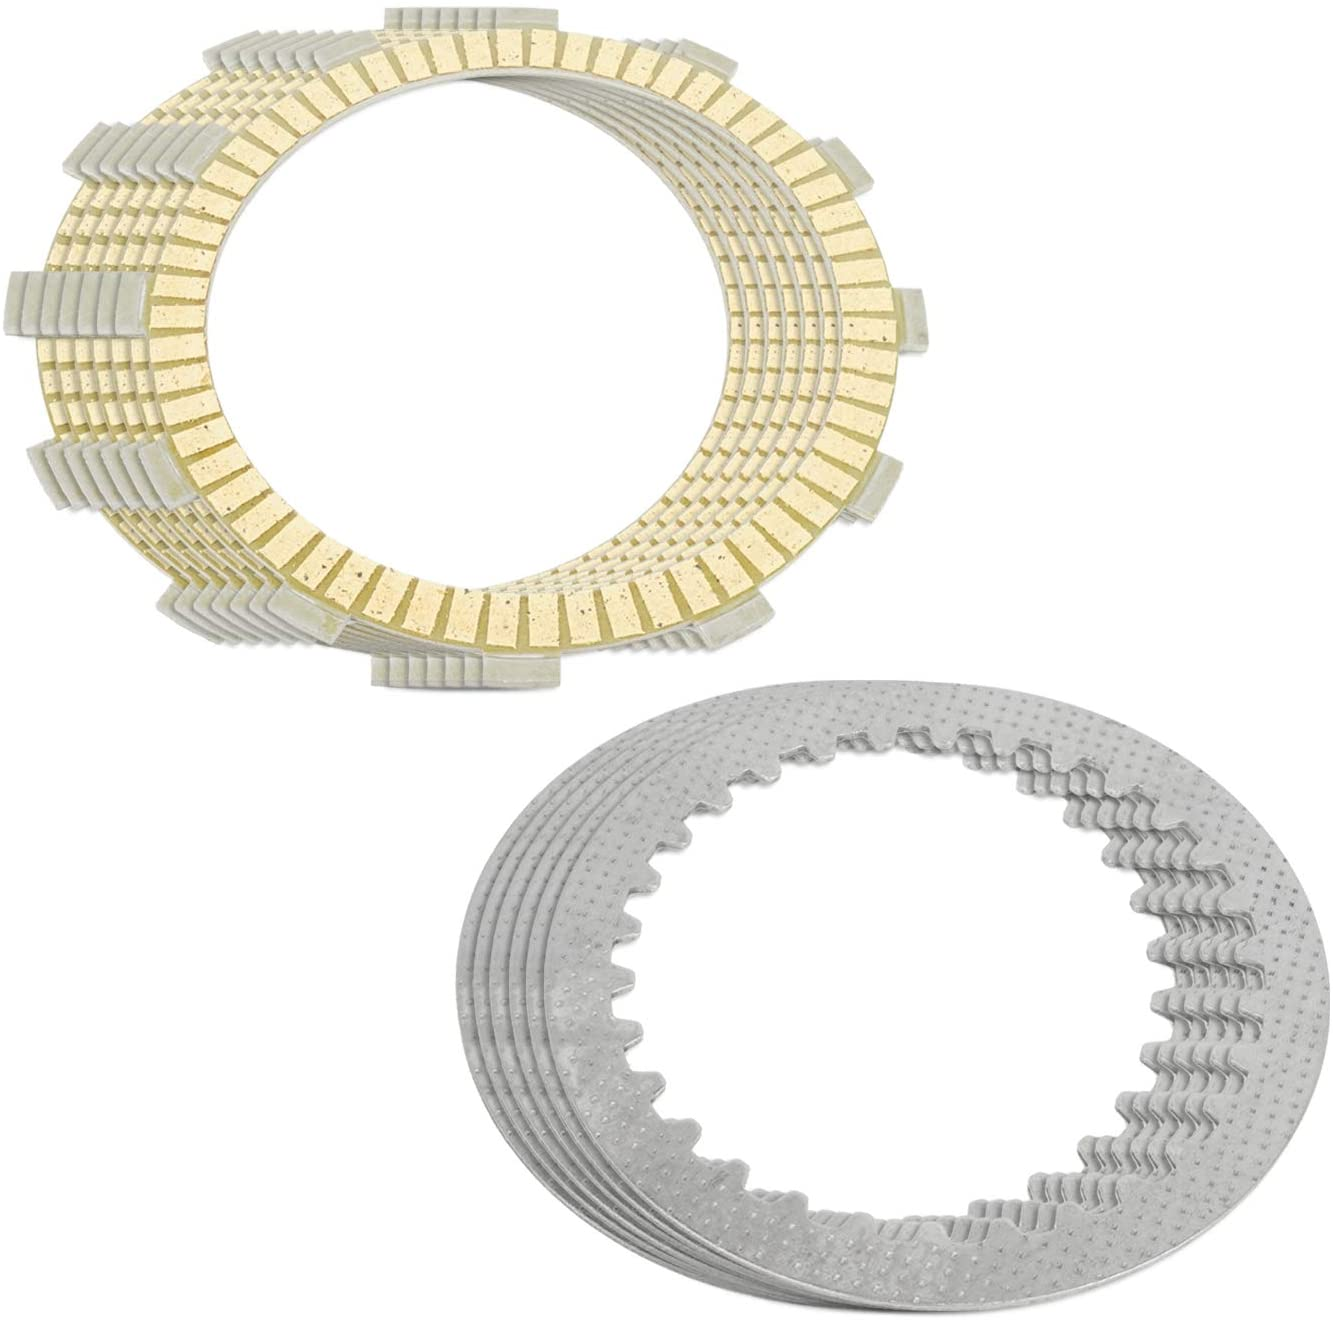 Caltric compatible with Clutch Friction and Steel Plates Kawasaki ZX550A Gpz550 1984 1985 1986